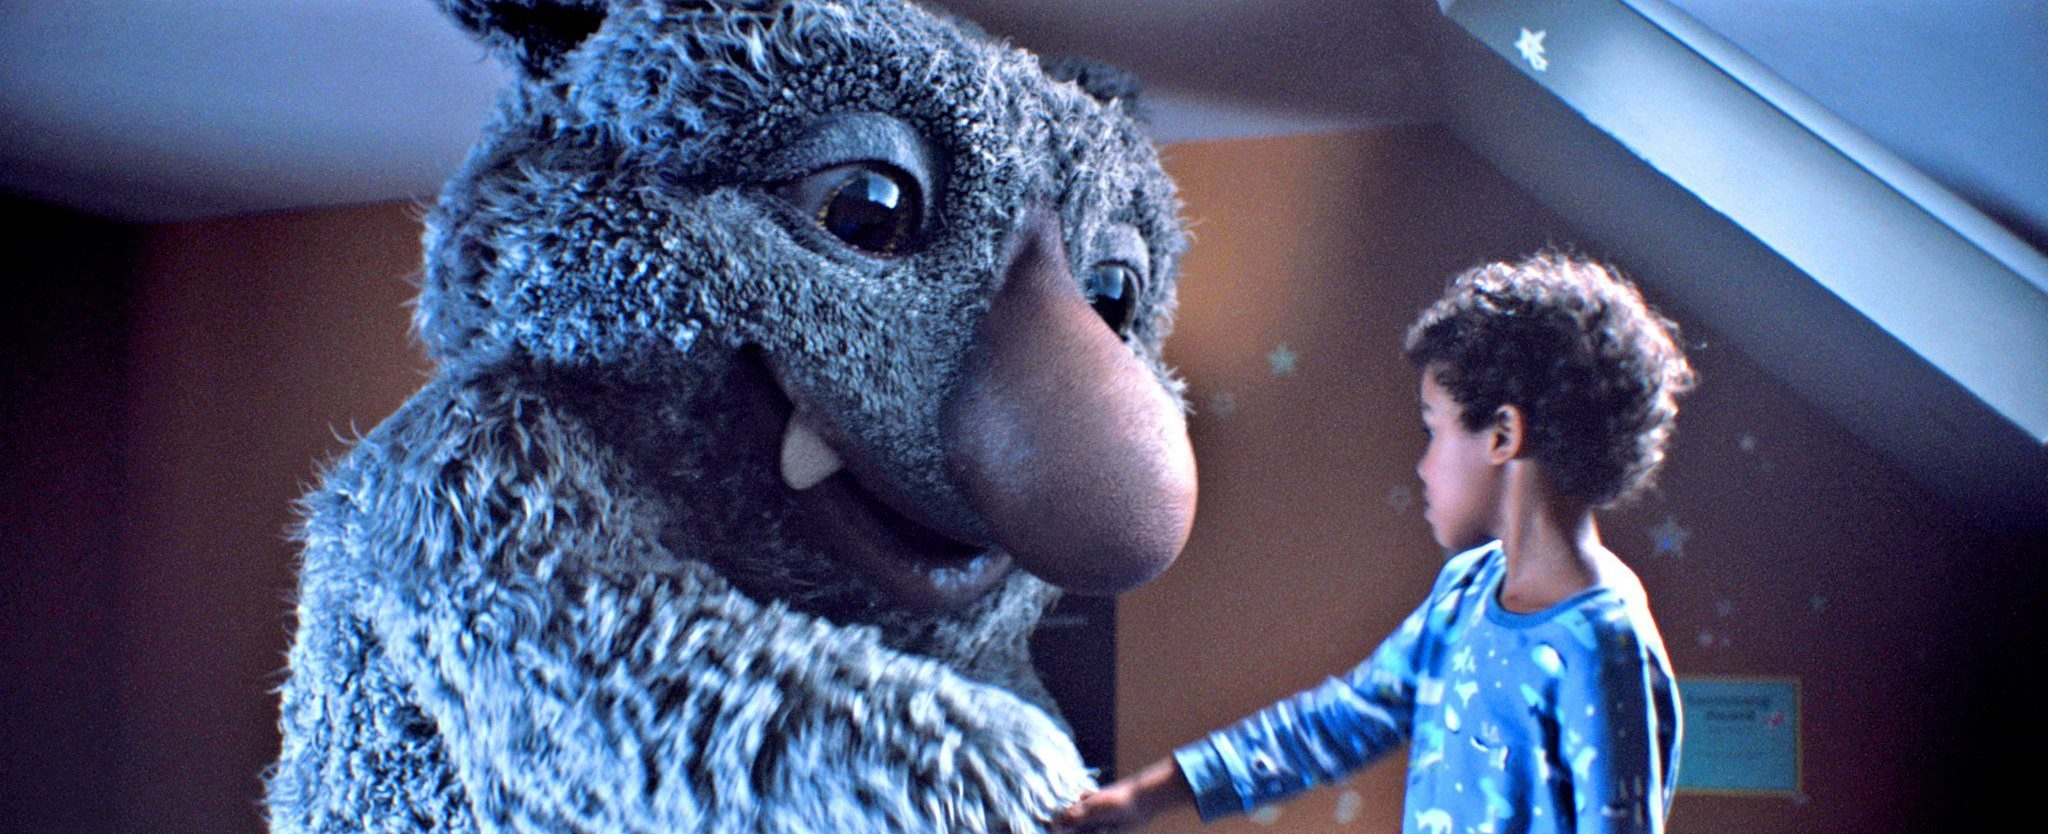 John Lewis Christmas advert 2017 – all the store's ads ranked from worst to best